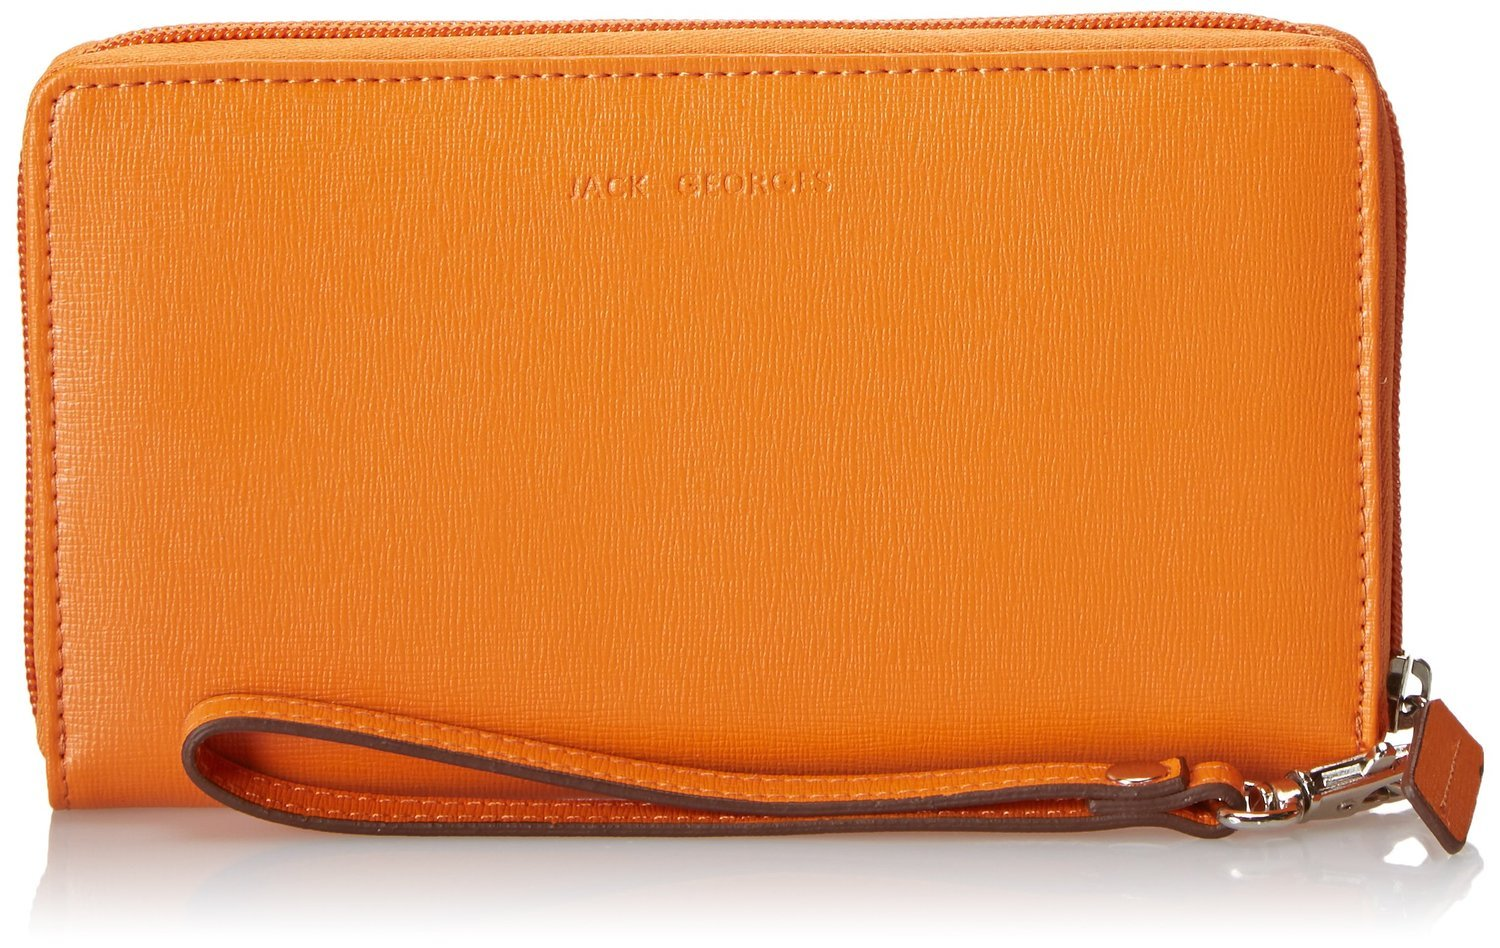 Jack Georges Chelsea 5724, Orange, One Size by Jack Georges